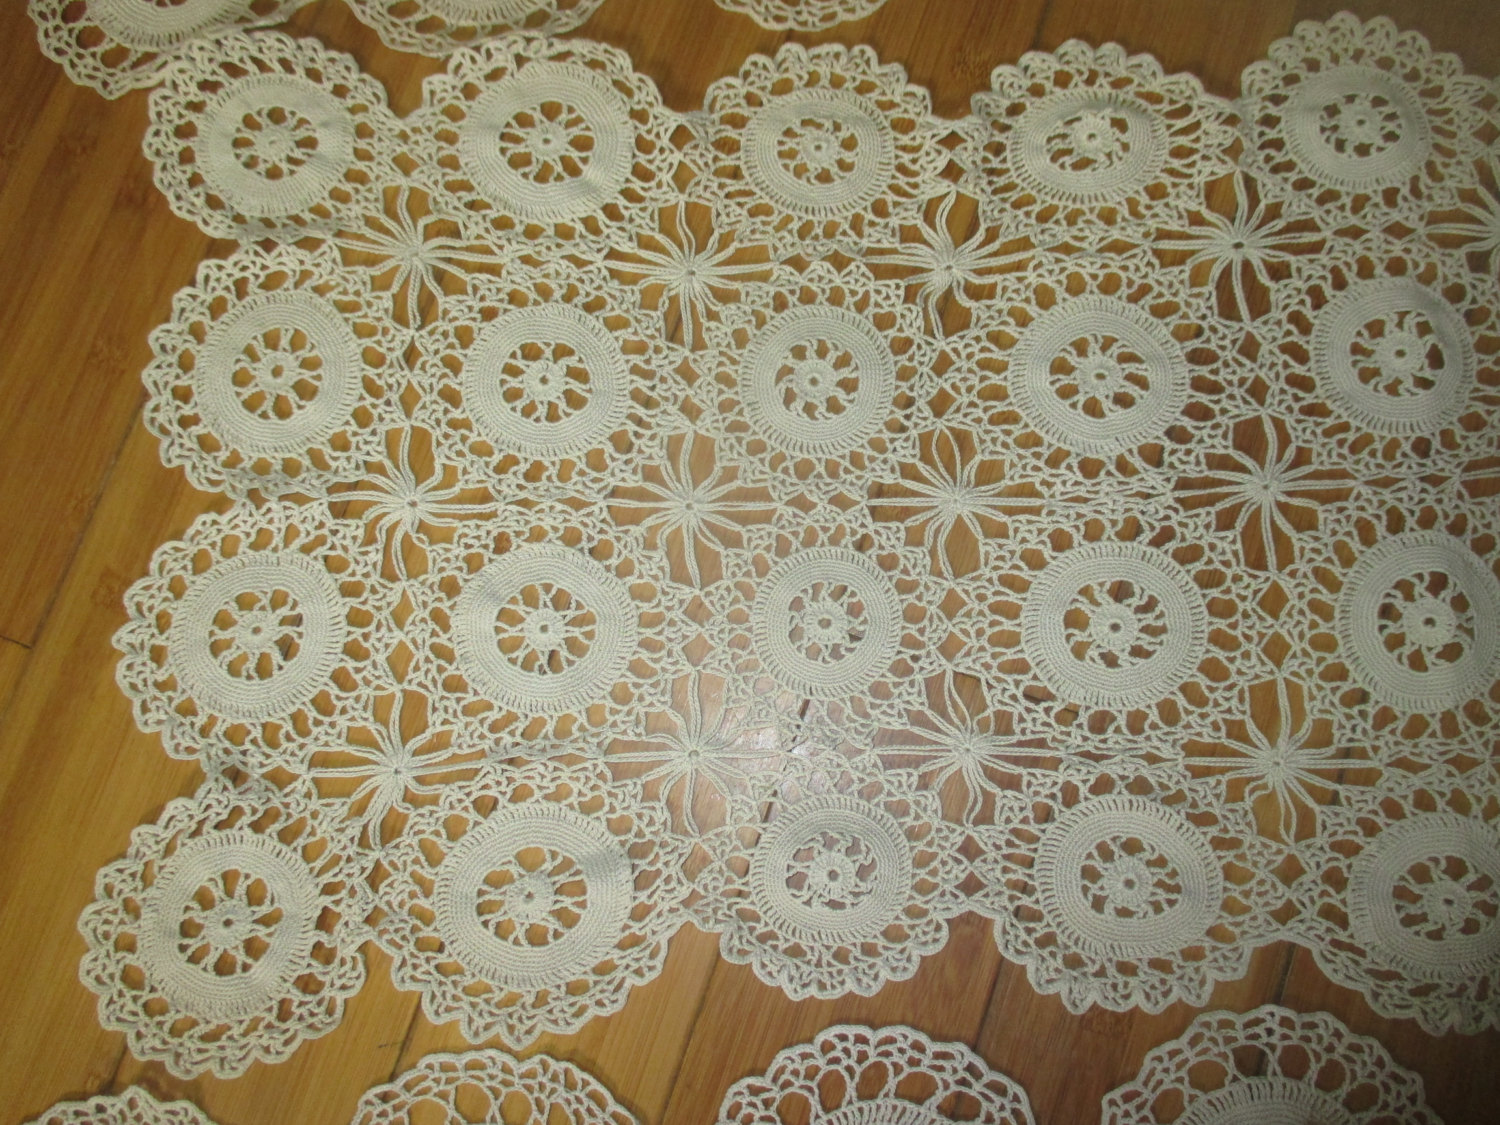 vintage hand crocheted doilies lot of 8 pieces light beige cotton hand made doilies dresser scarves table runners table covers